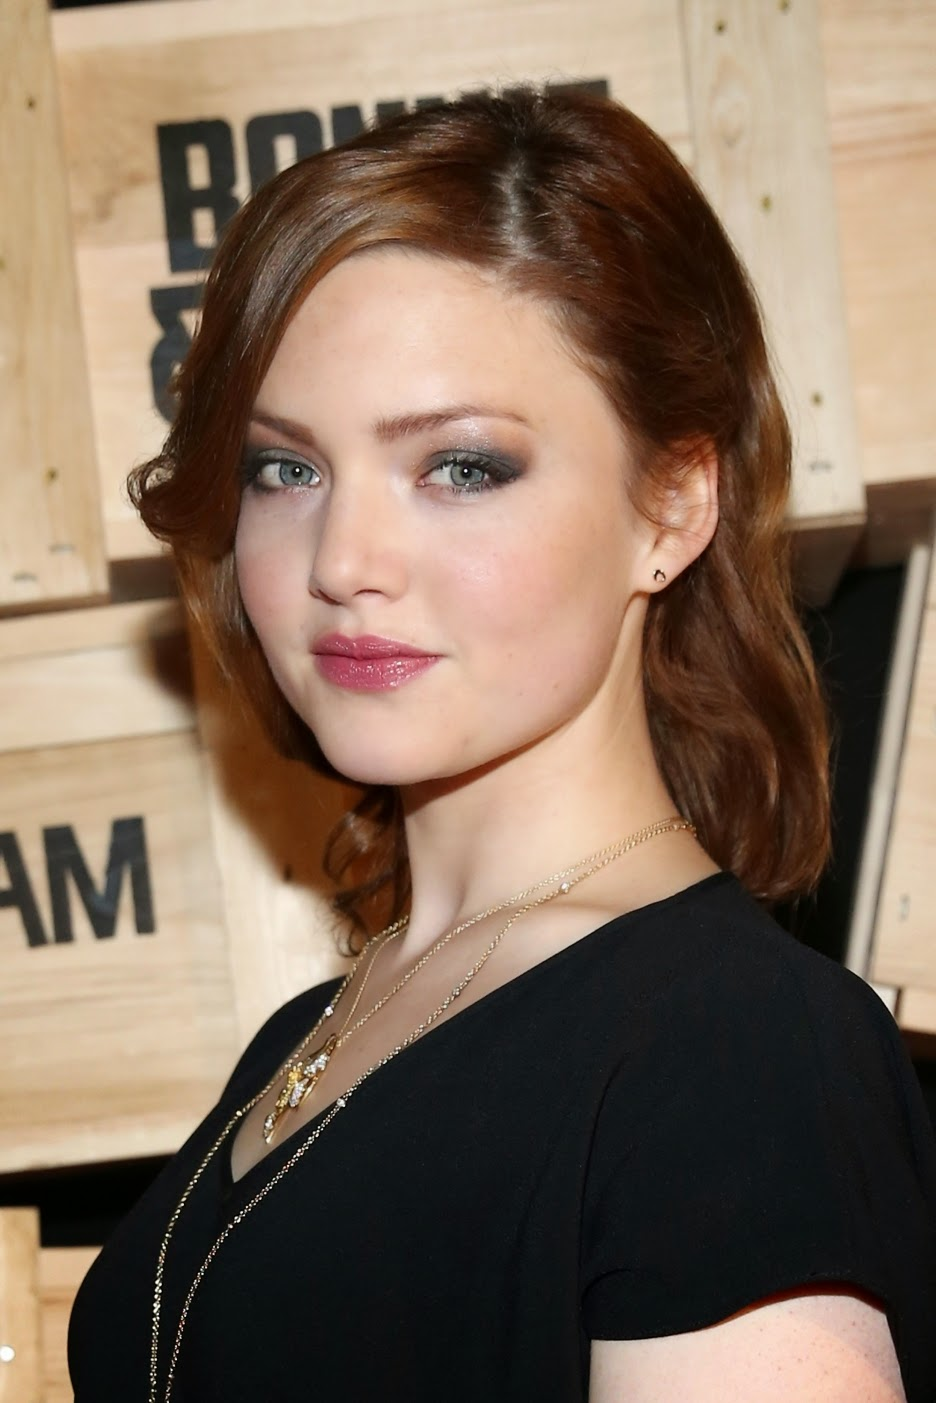 Holliday Grainger Hd Images Gallery Download Free High